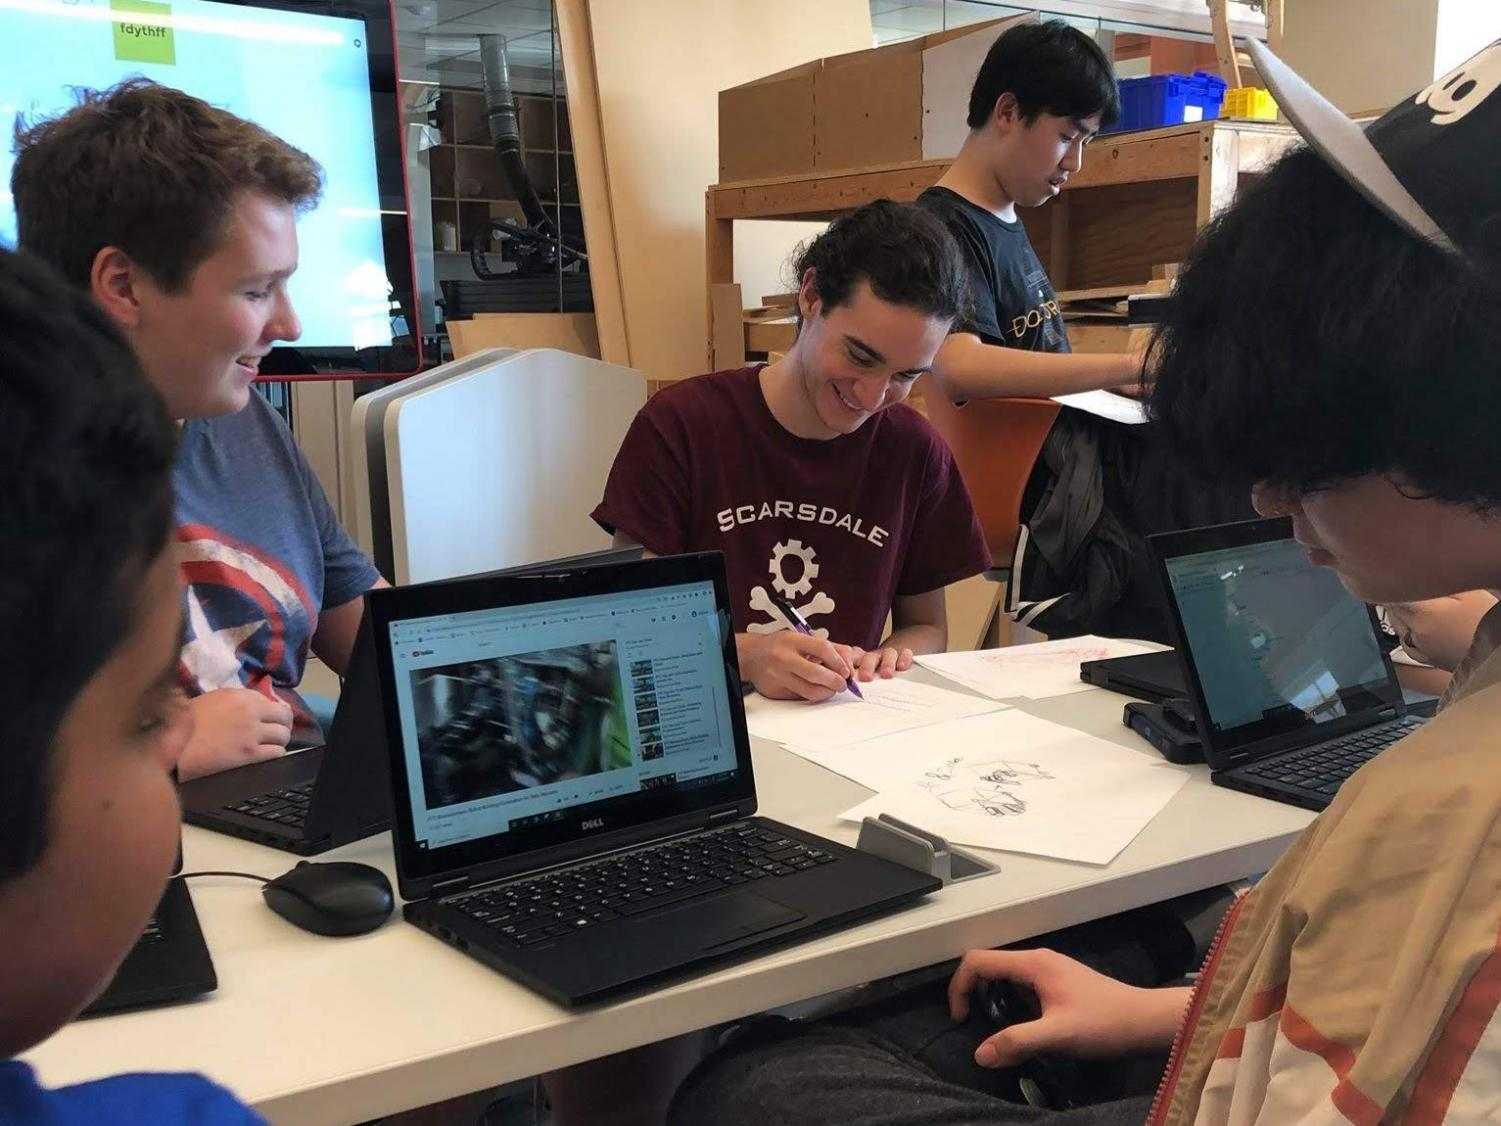 Members of the Robo Raiders brainstorm new designs. The Robotics Club is one of many extracurriculars advancing STEM knowledge at SHS.